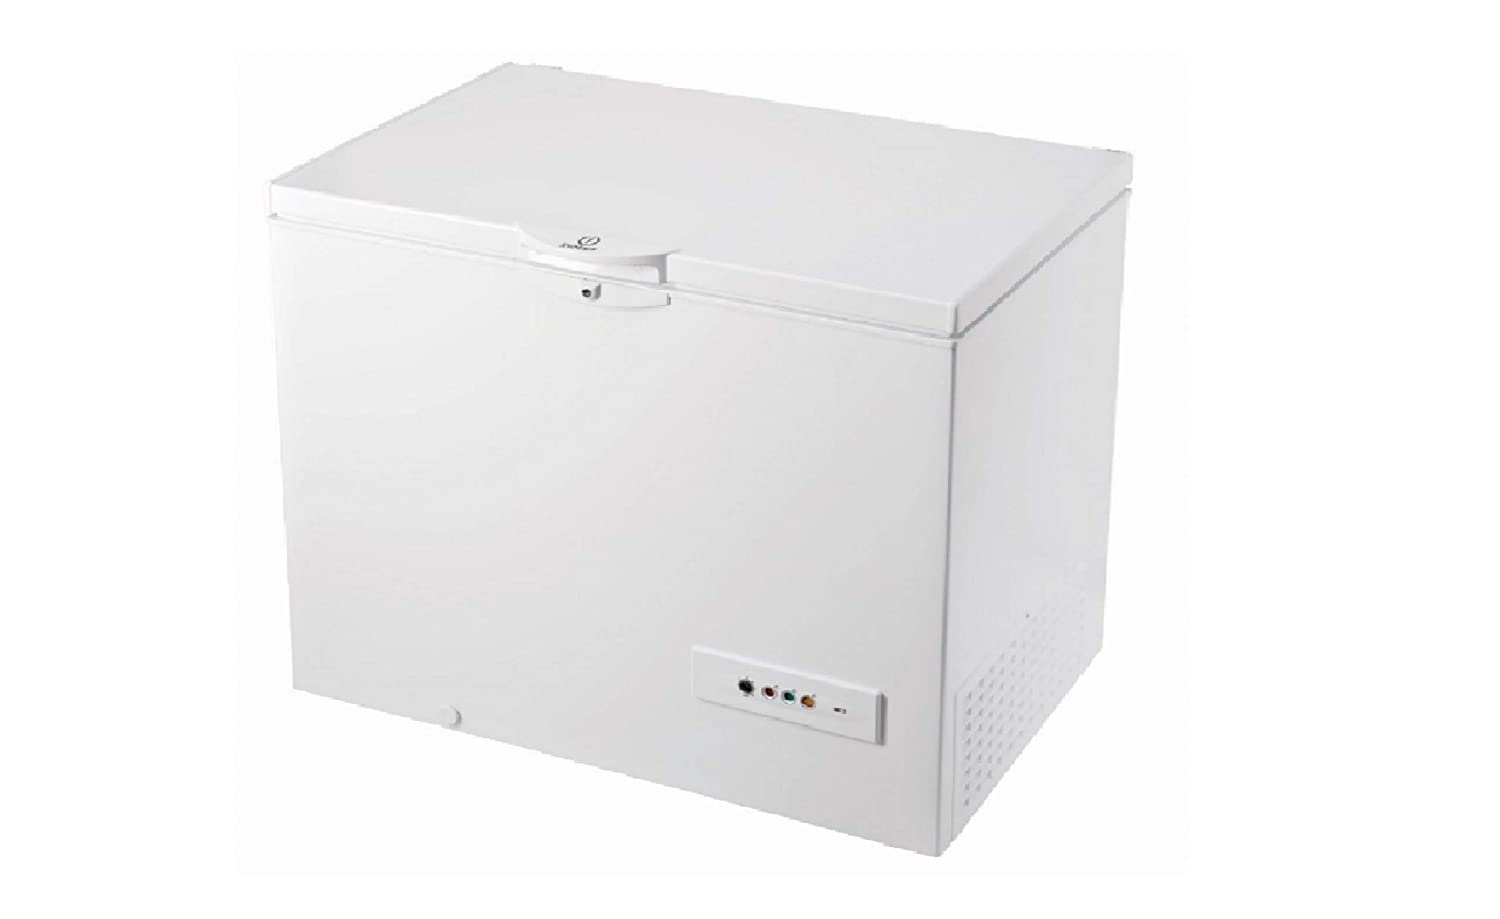 Indesit OS 2A 200 H Independiente Vertical 167L A++ Blanco ...